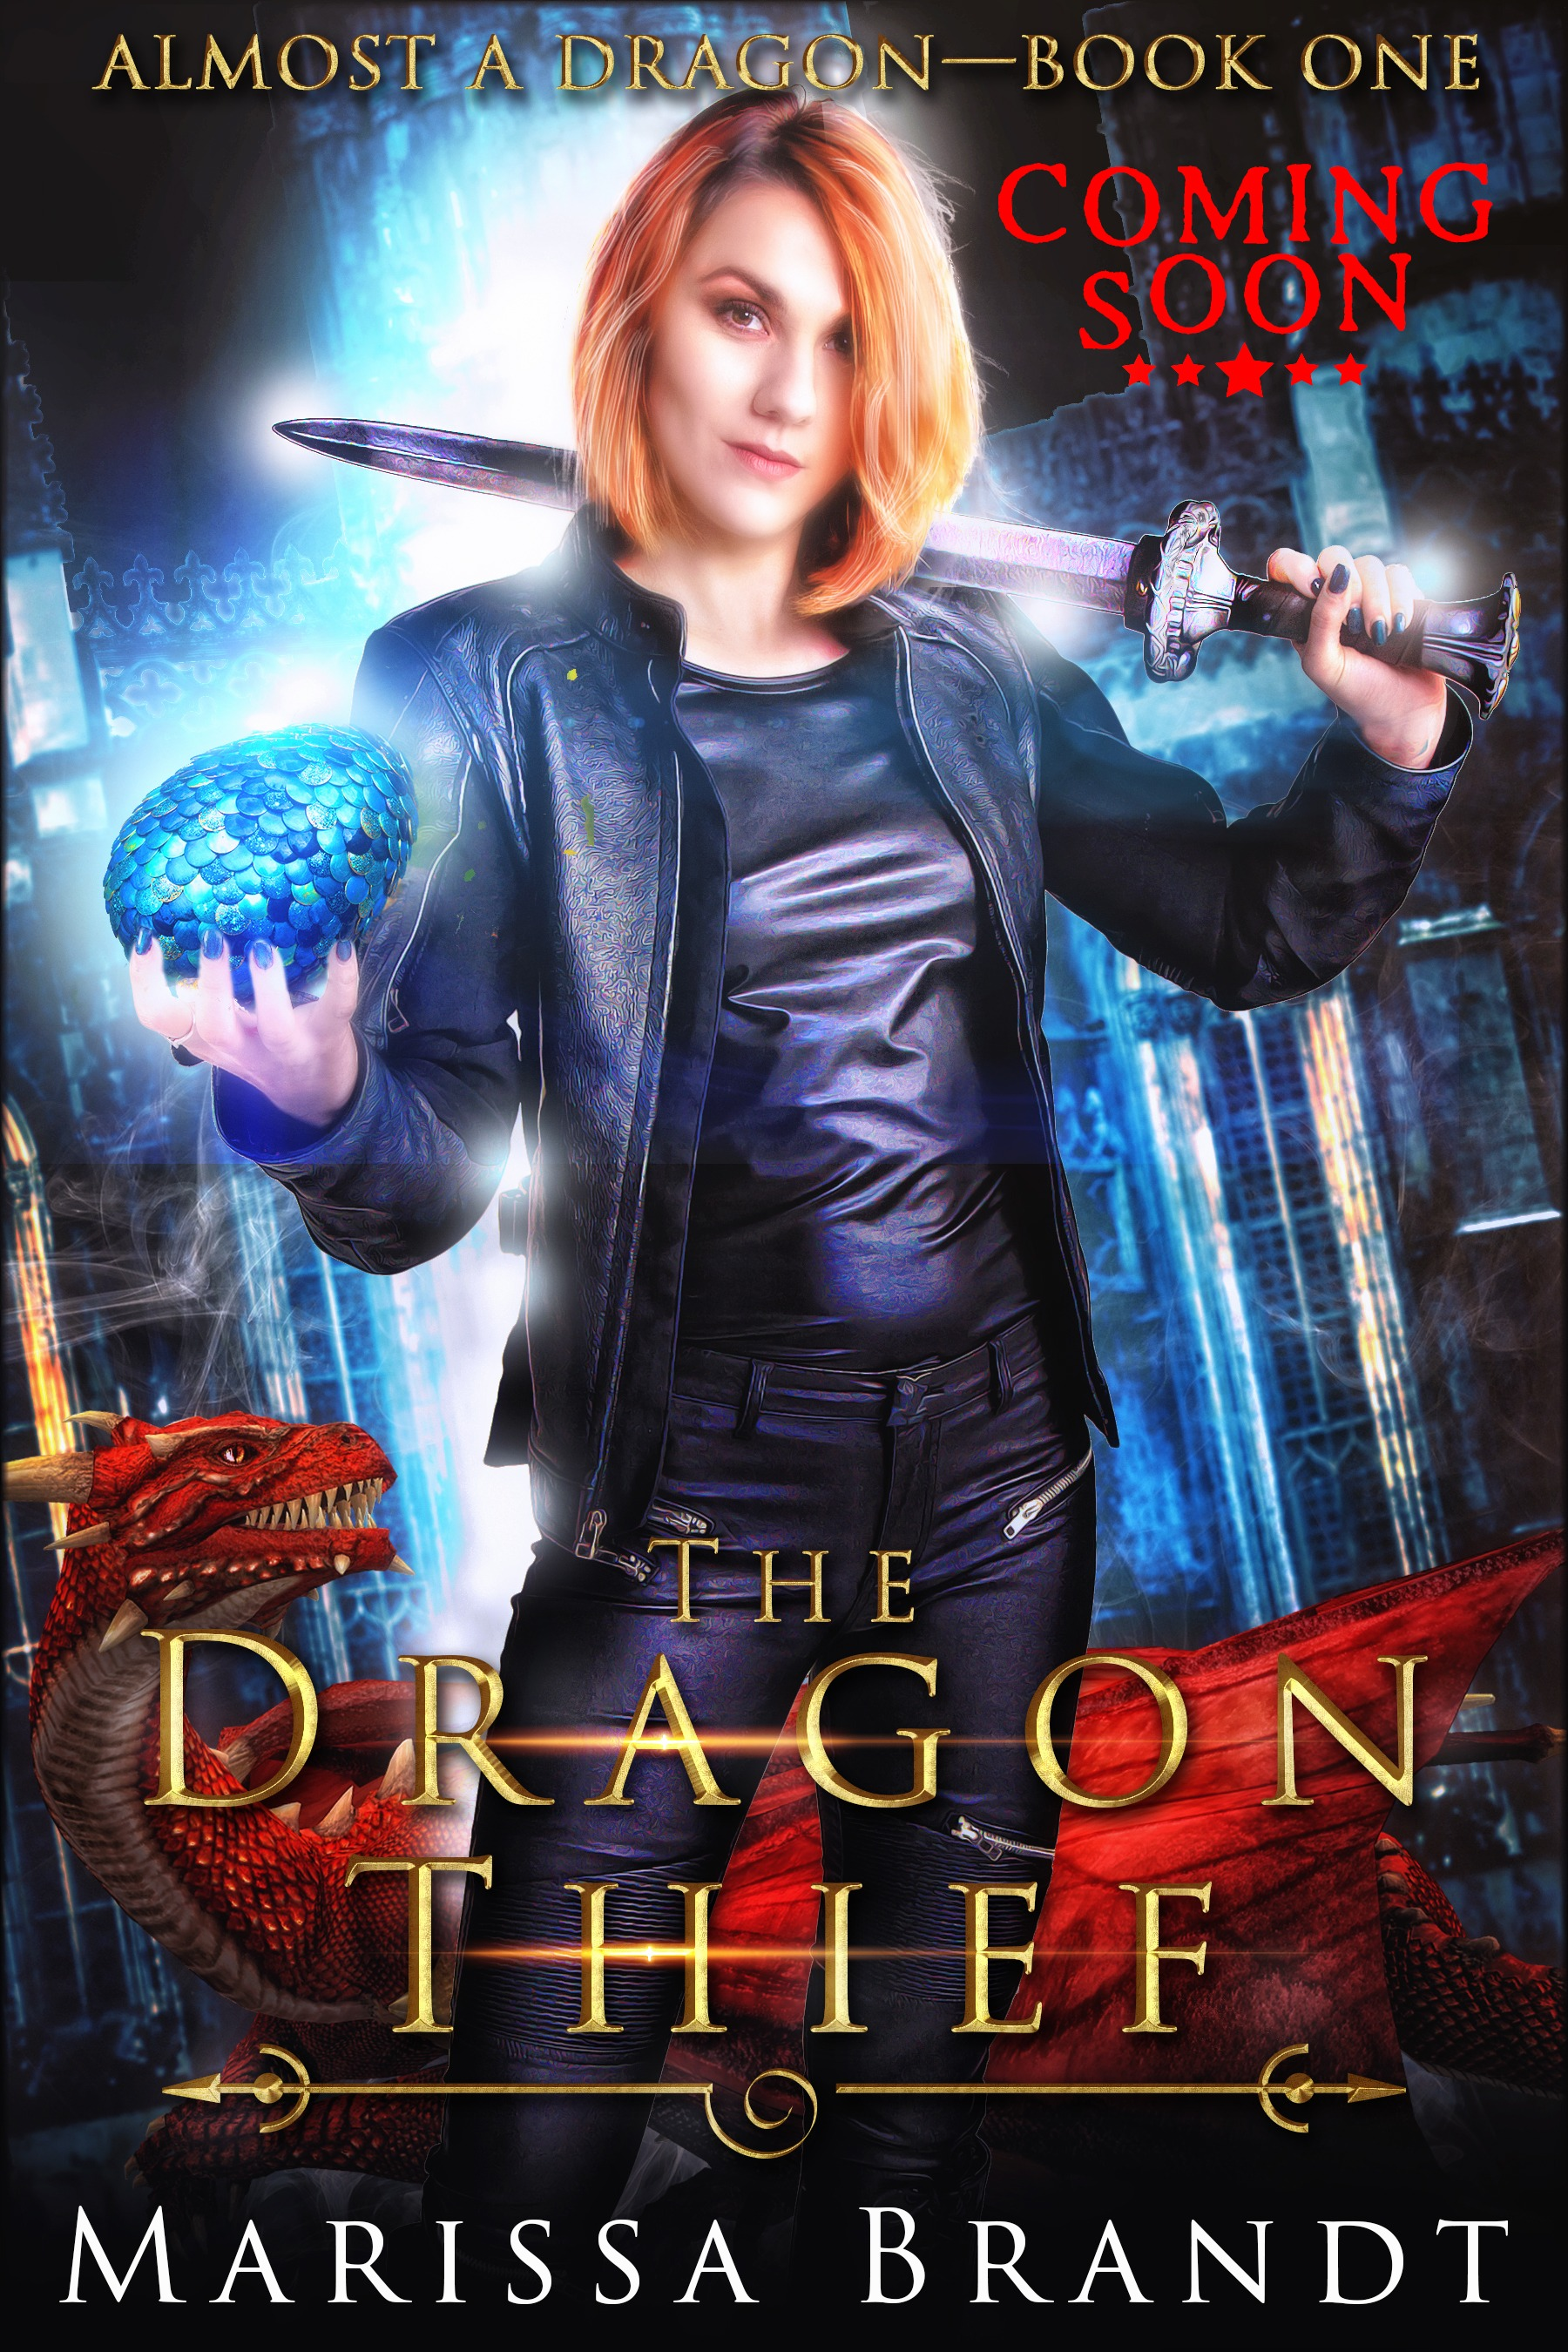 The Dragon Thief - Marissa Brandt - coming soon book-cover